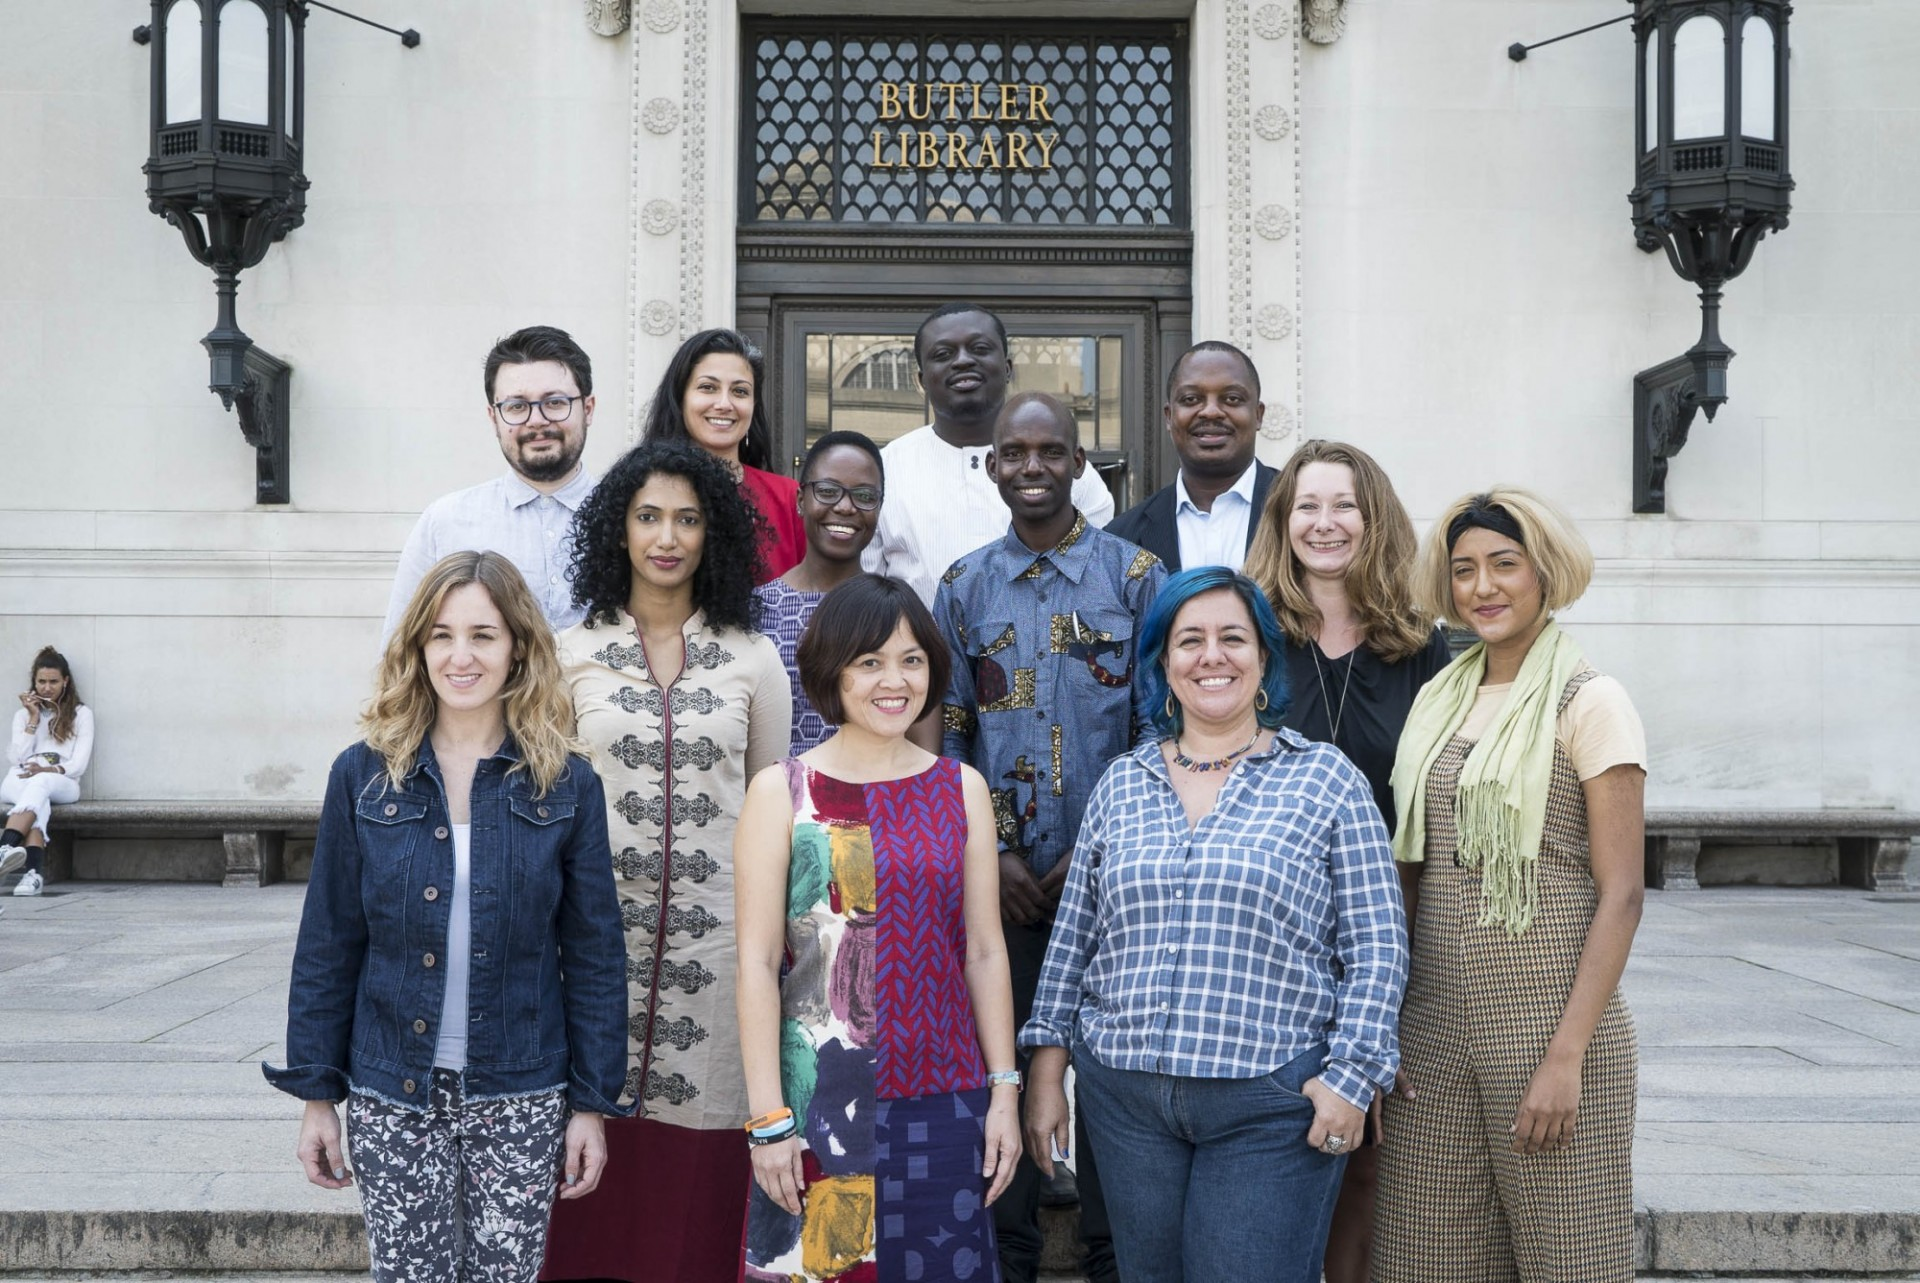 The inaugural cohort of Obama Foundation Scholars pictured in front of Butler Library.